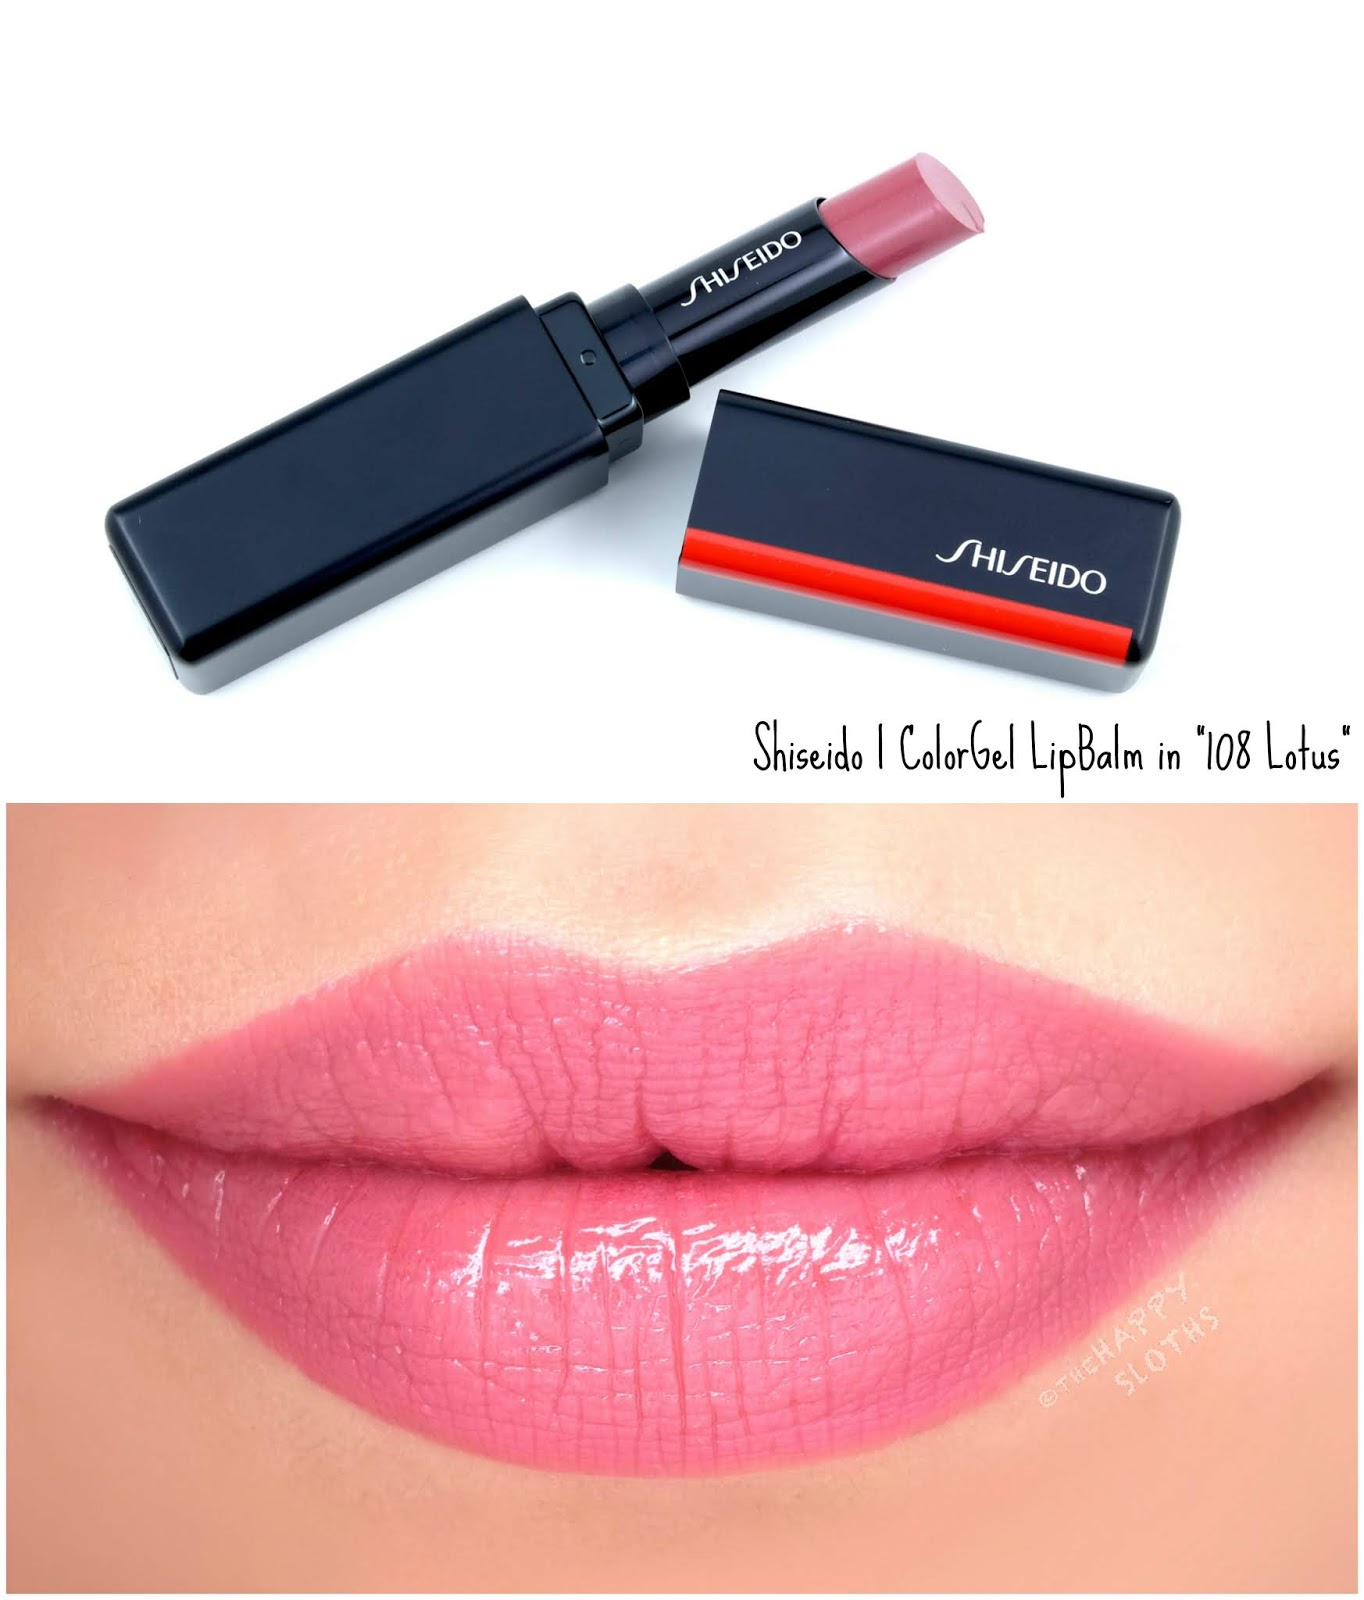 "Shiseido | ColorGel LipBalm in ""108 Lotus"": Review and Swatches"